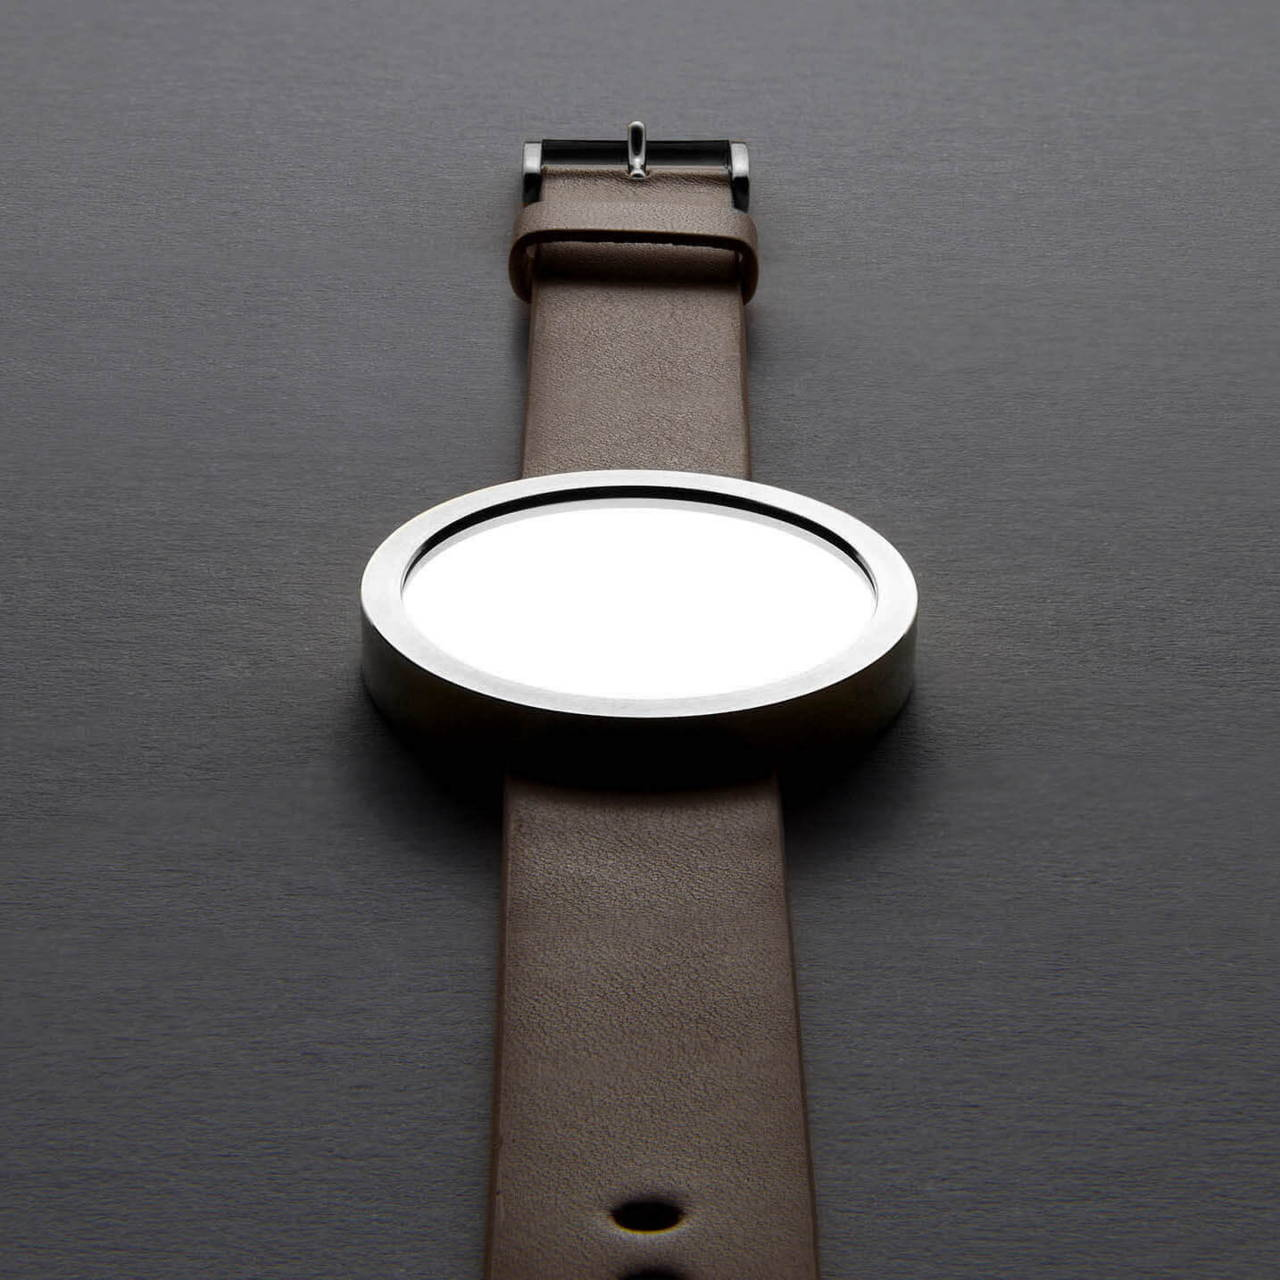 Timeless Wrist Mirror with Stainless Steel Case and Tan Leather Strap